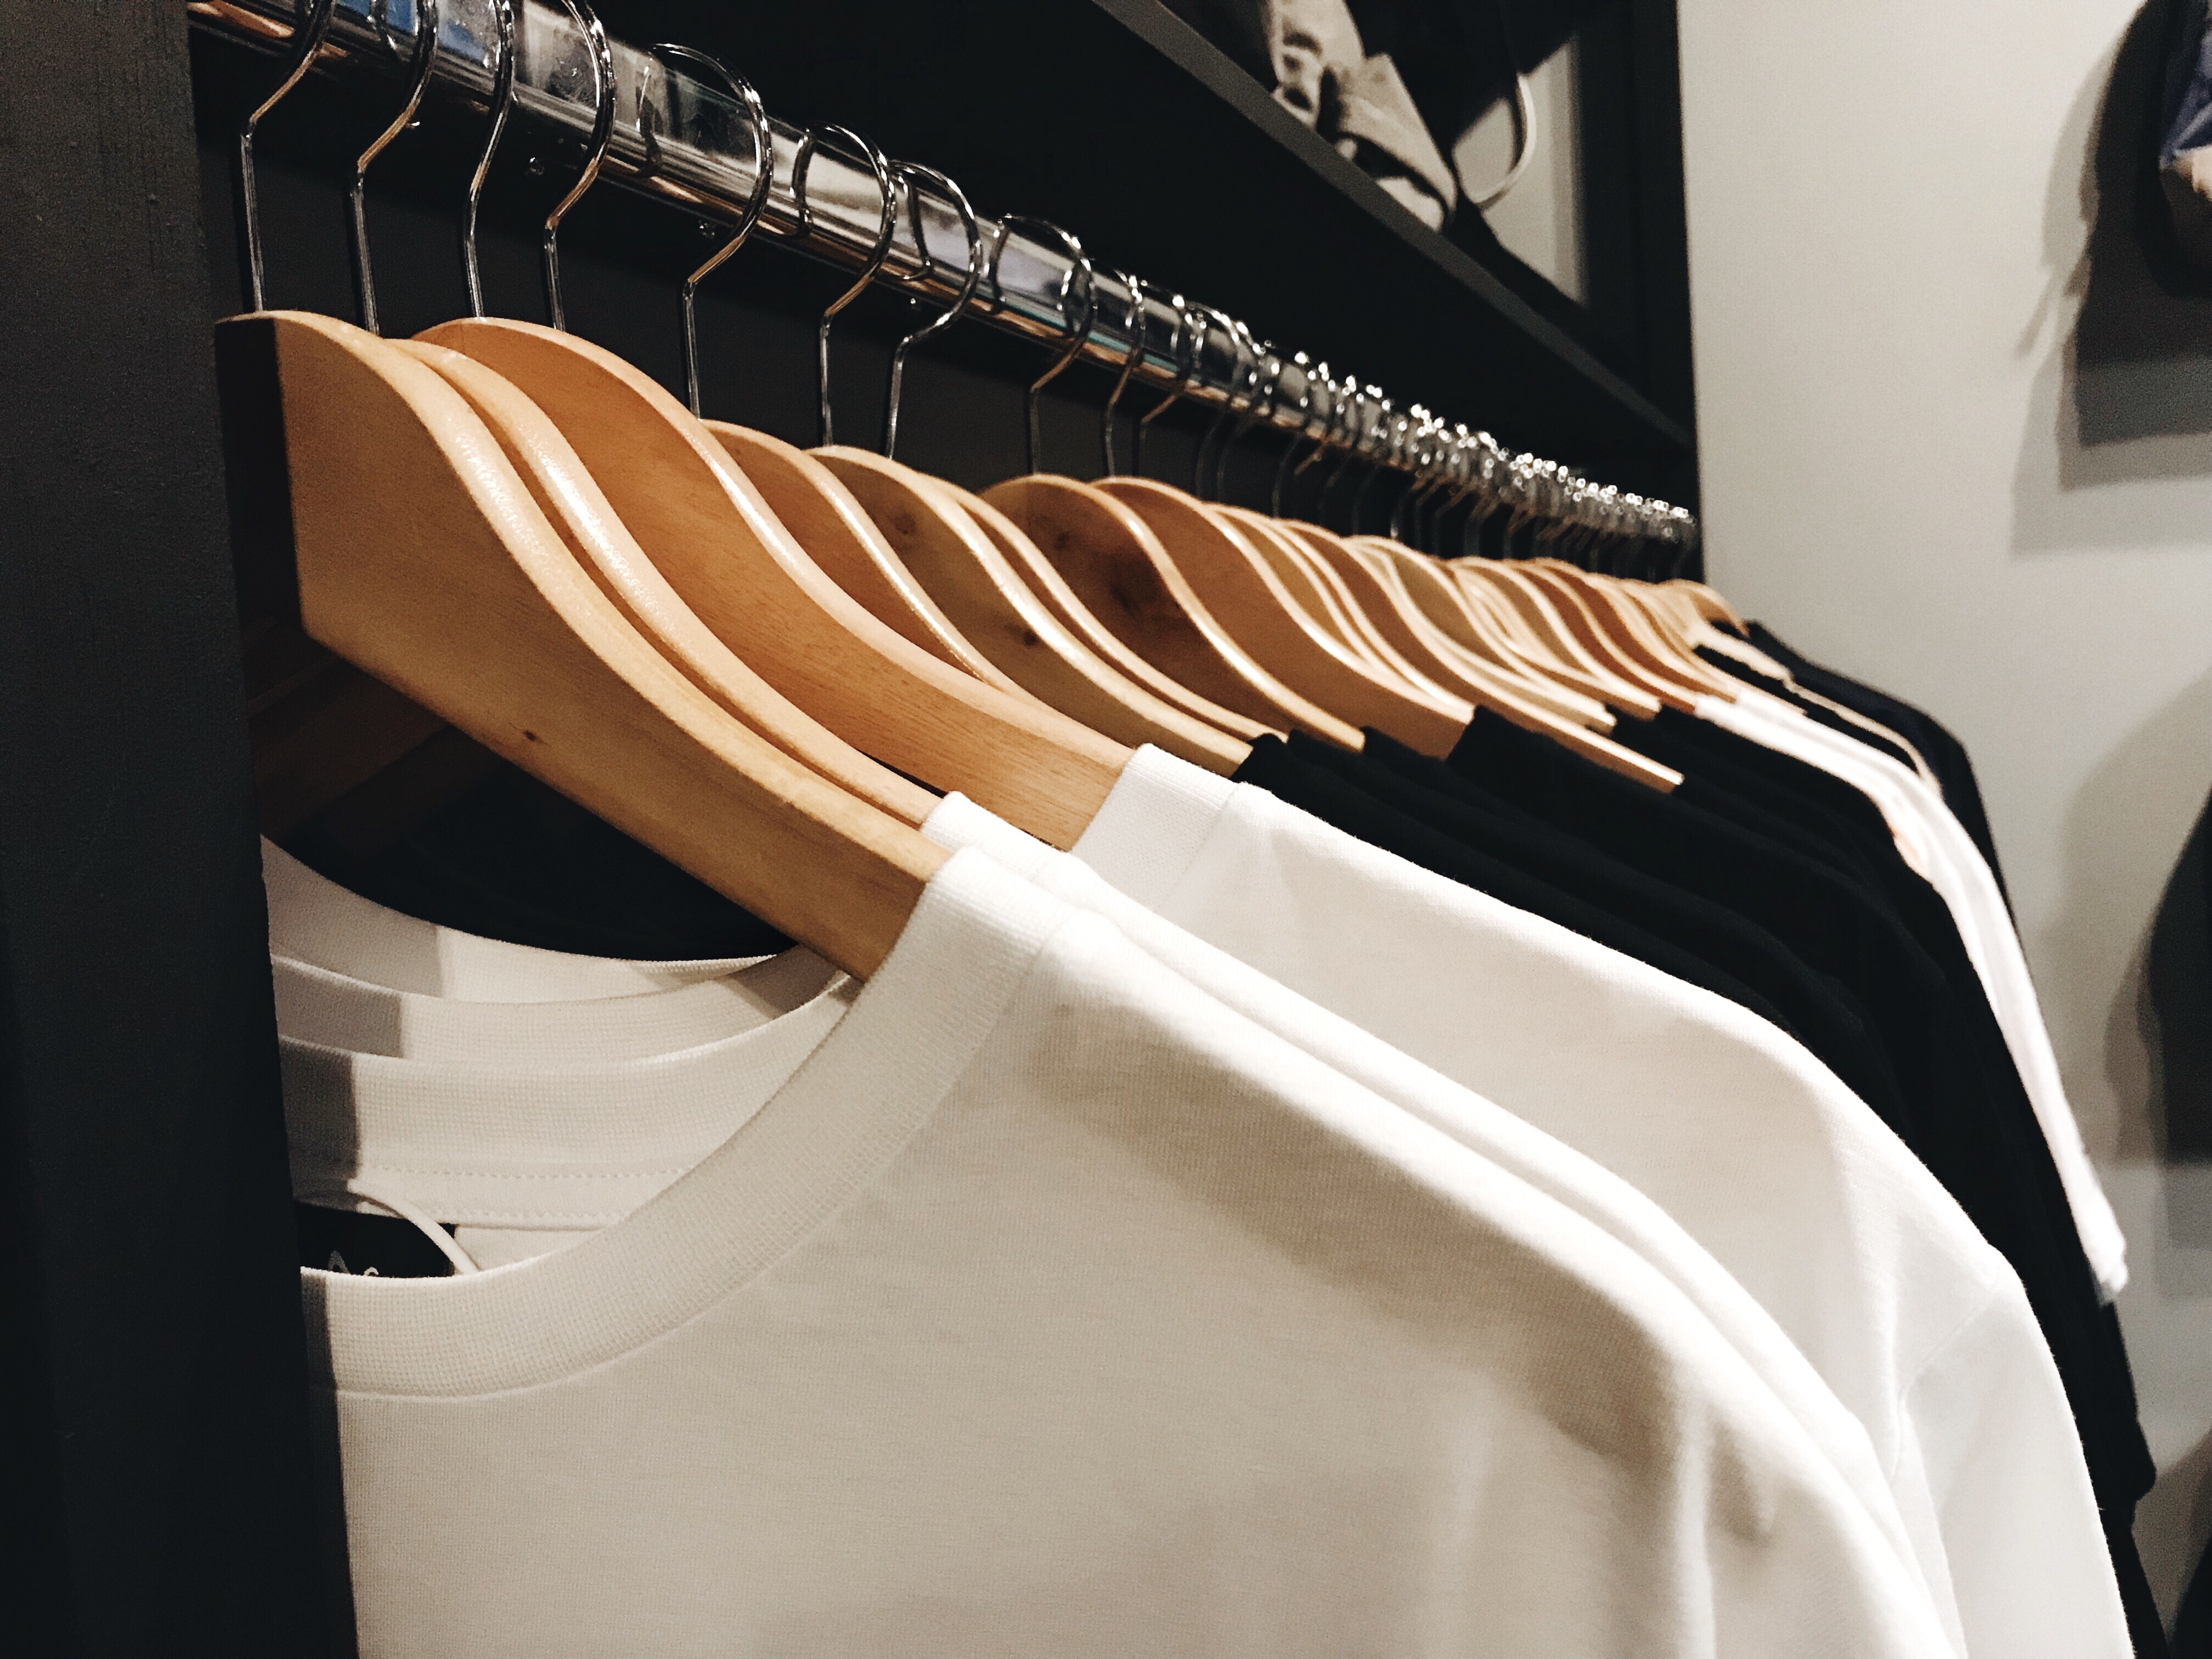 t shirts hanging on a rack